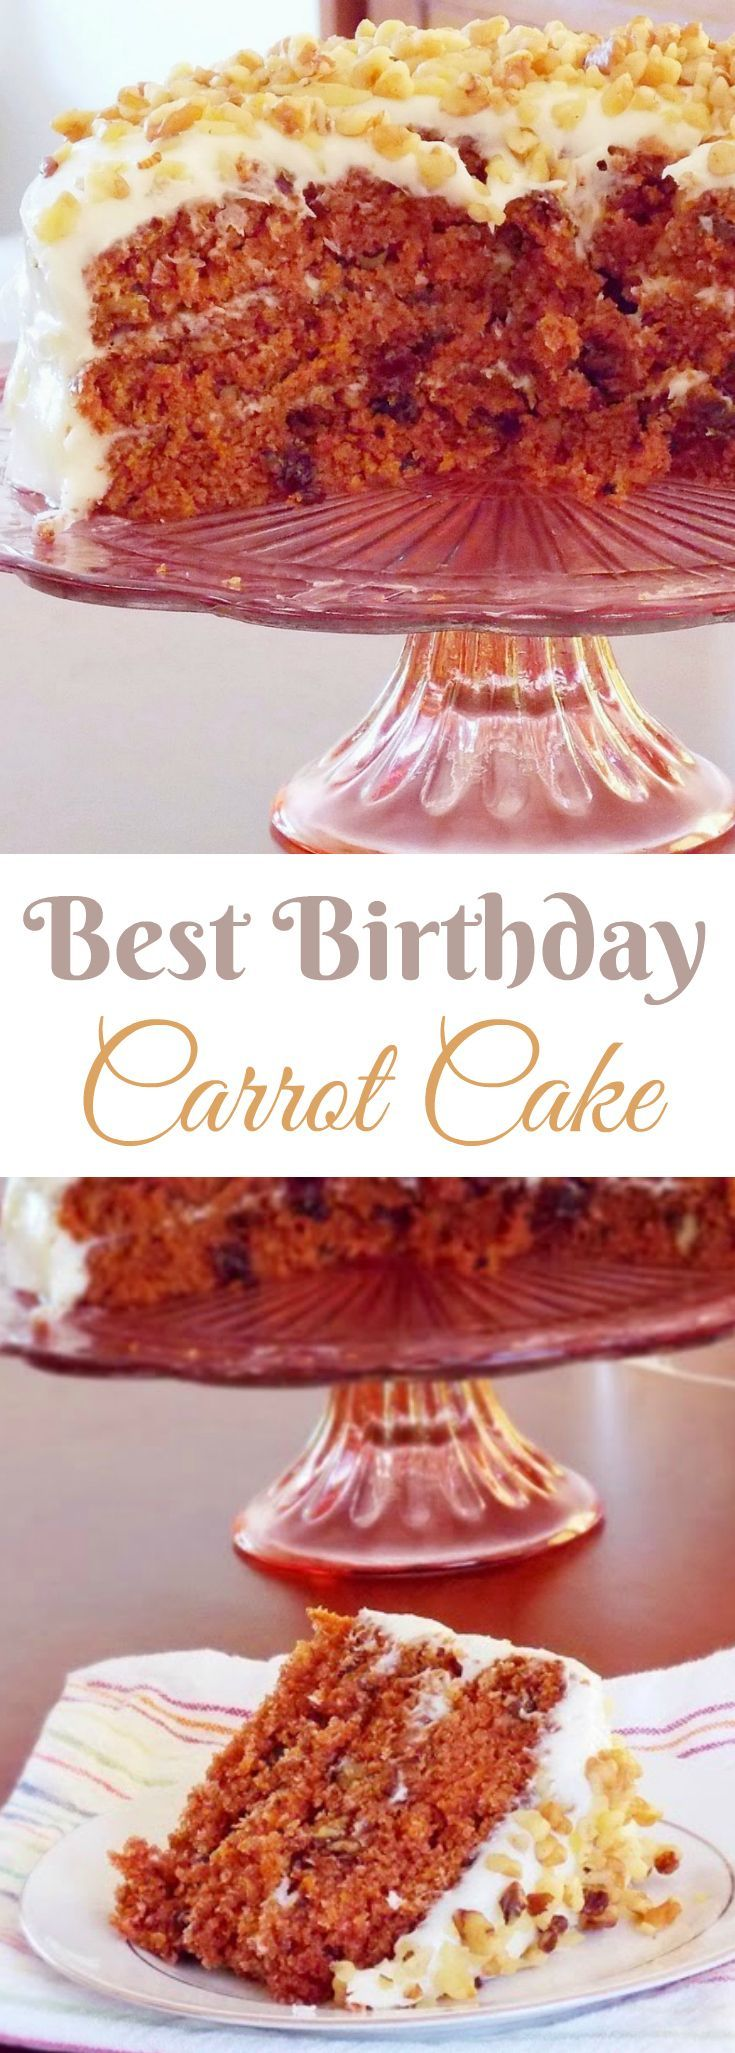 This cream cheese frosted carrot cake is moist, delicious and full of raisins and nuts making it the Best Birthday Carrot Cake to celebrate with!